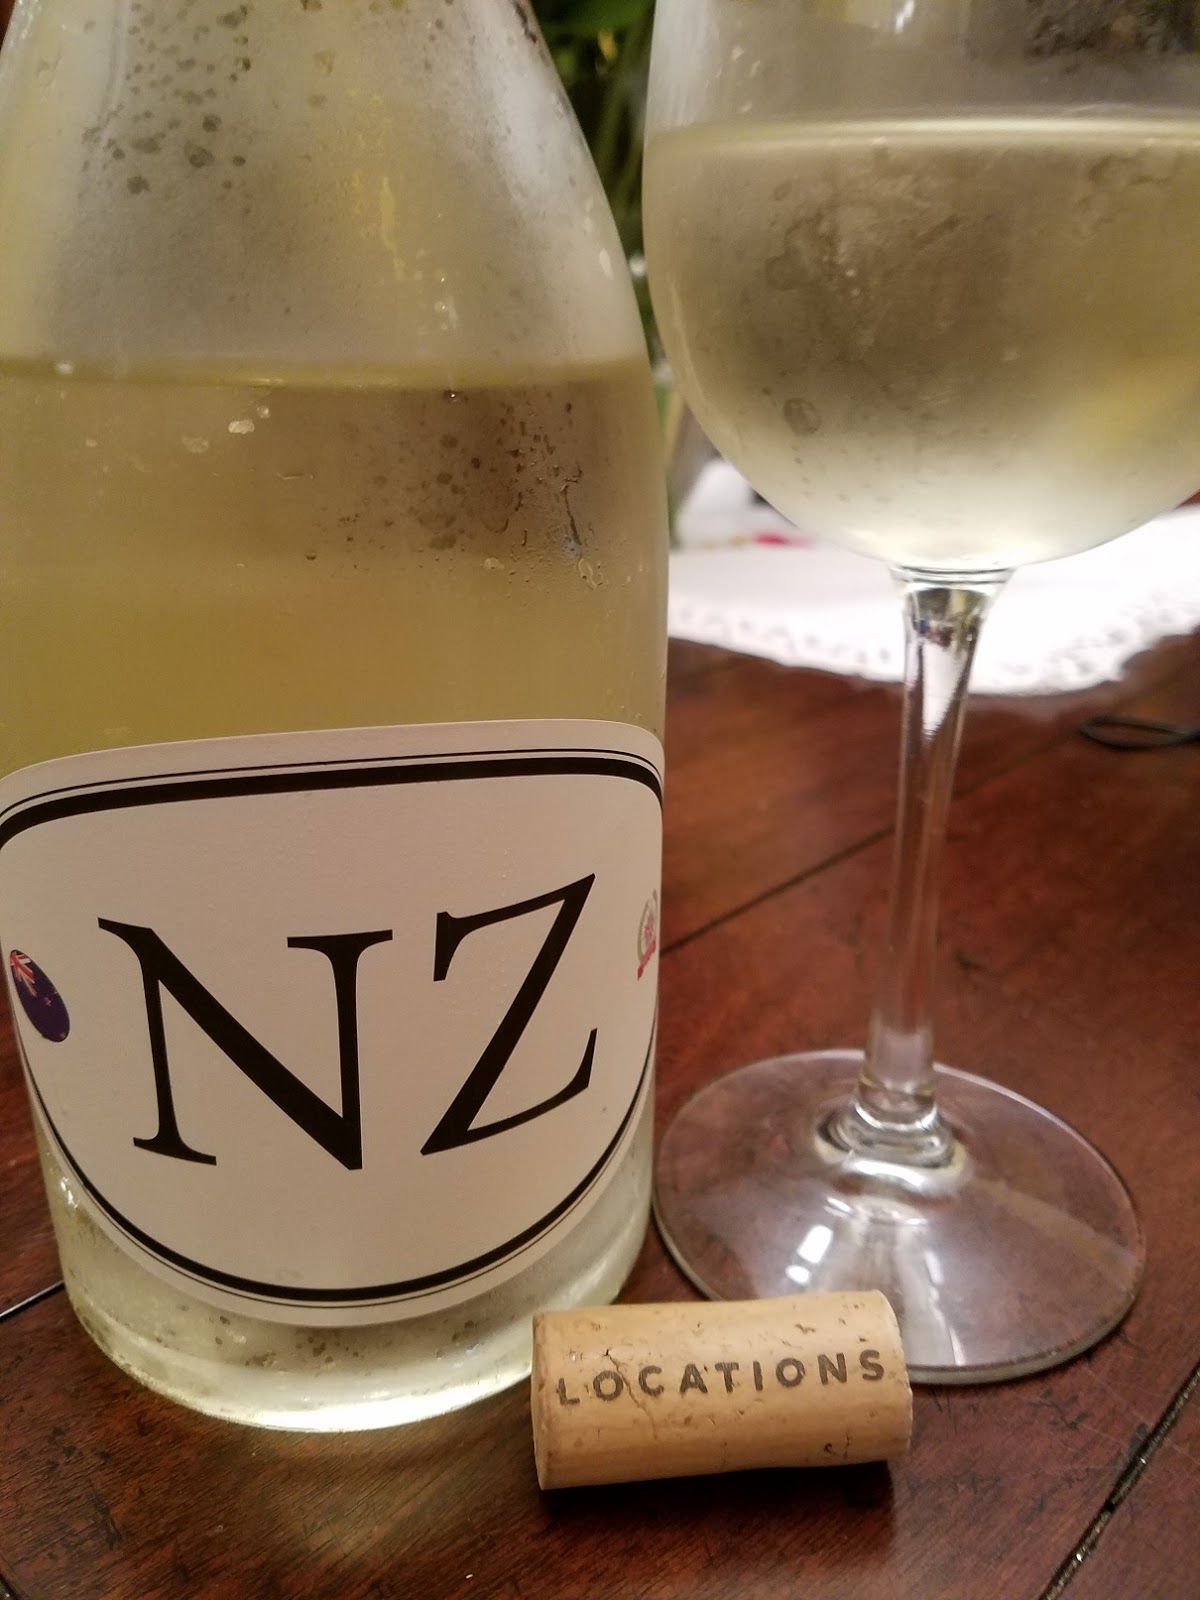 It Took A Few Years But The Locations Brand Has Landed In New Zealand With The Release Of The Nz6 New Zealand Sauvignon Blanc 19 99 The Wine Is 100